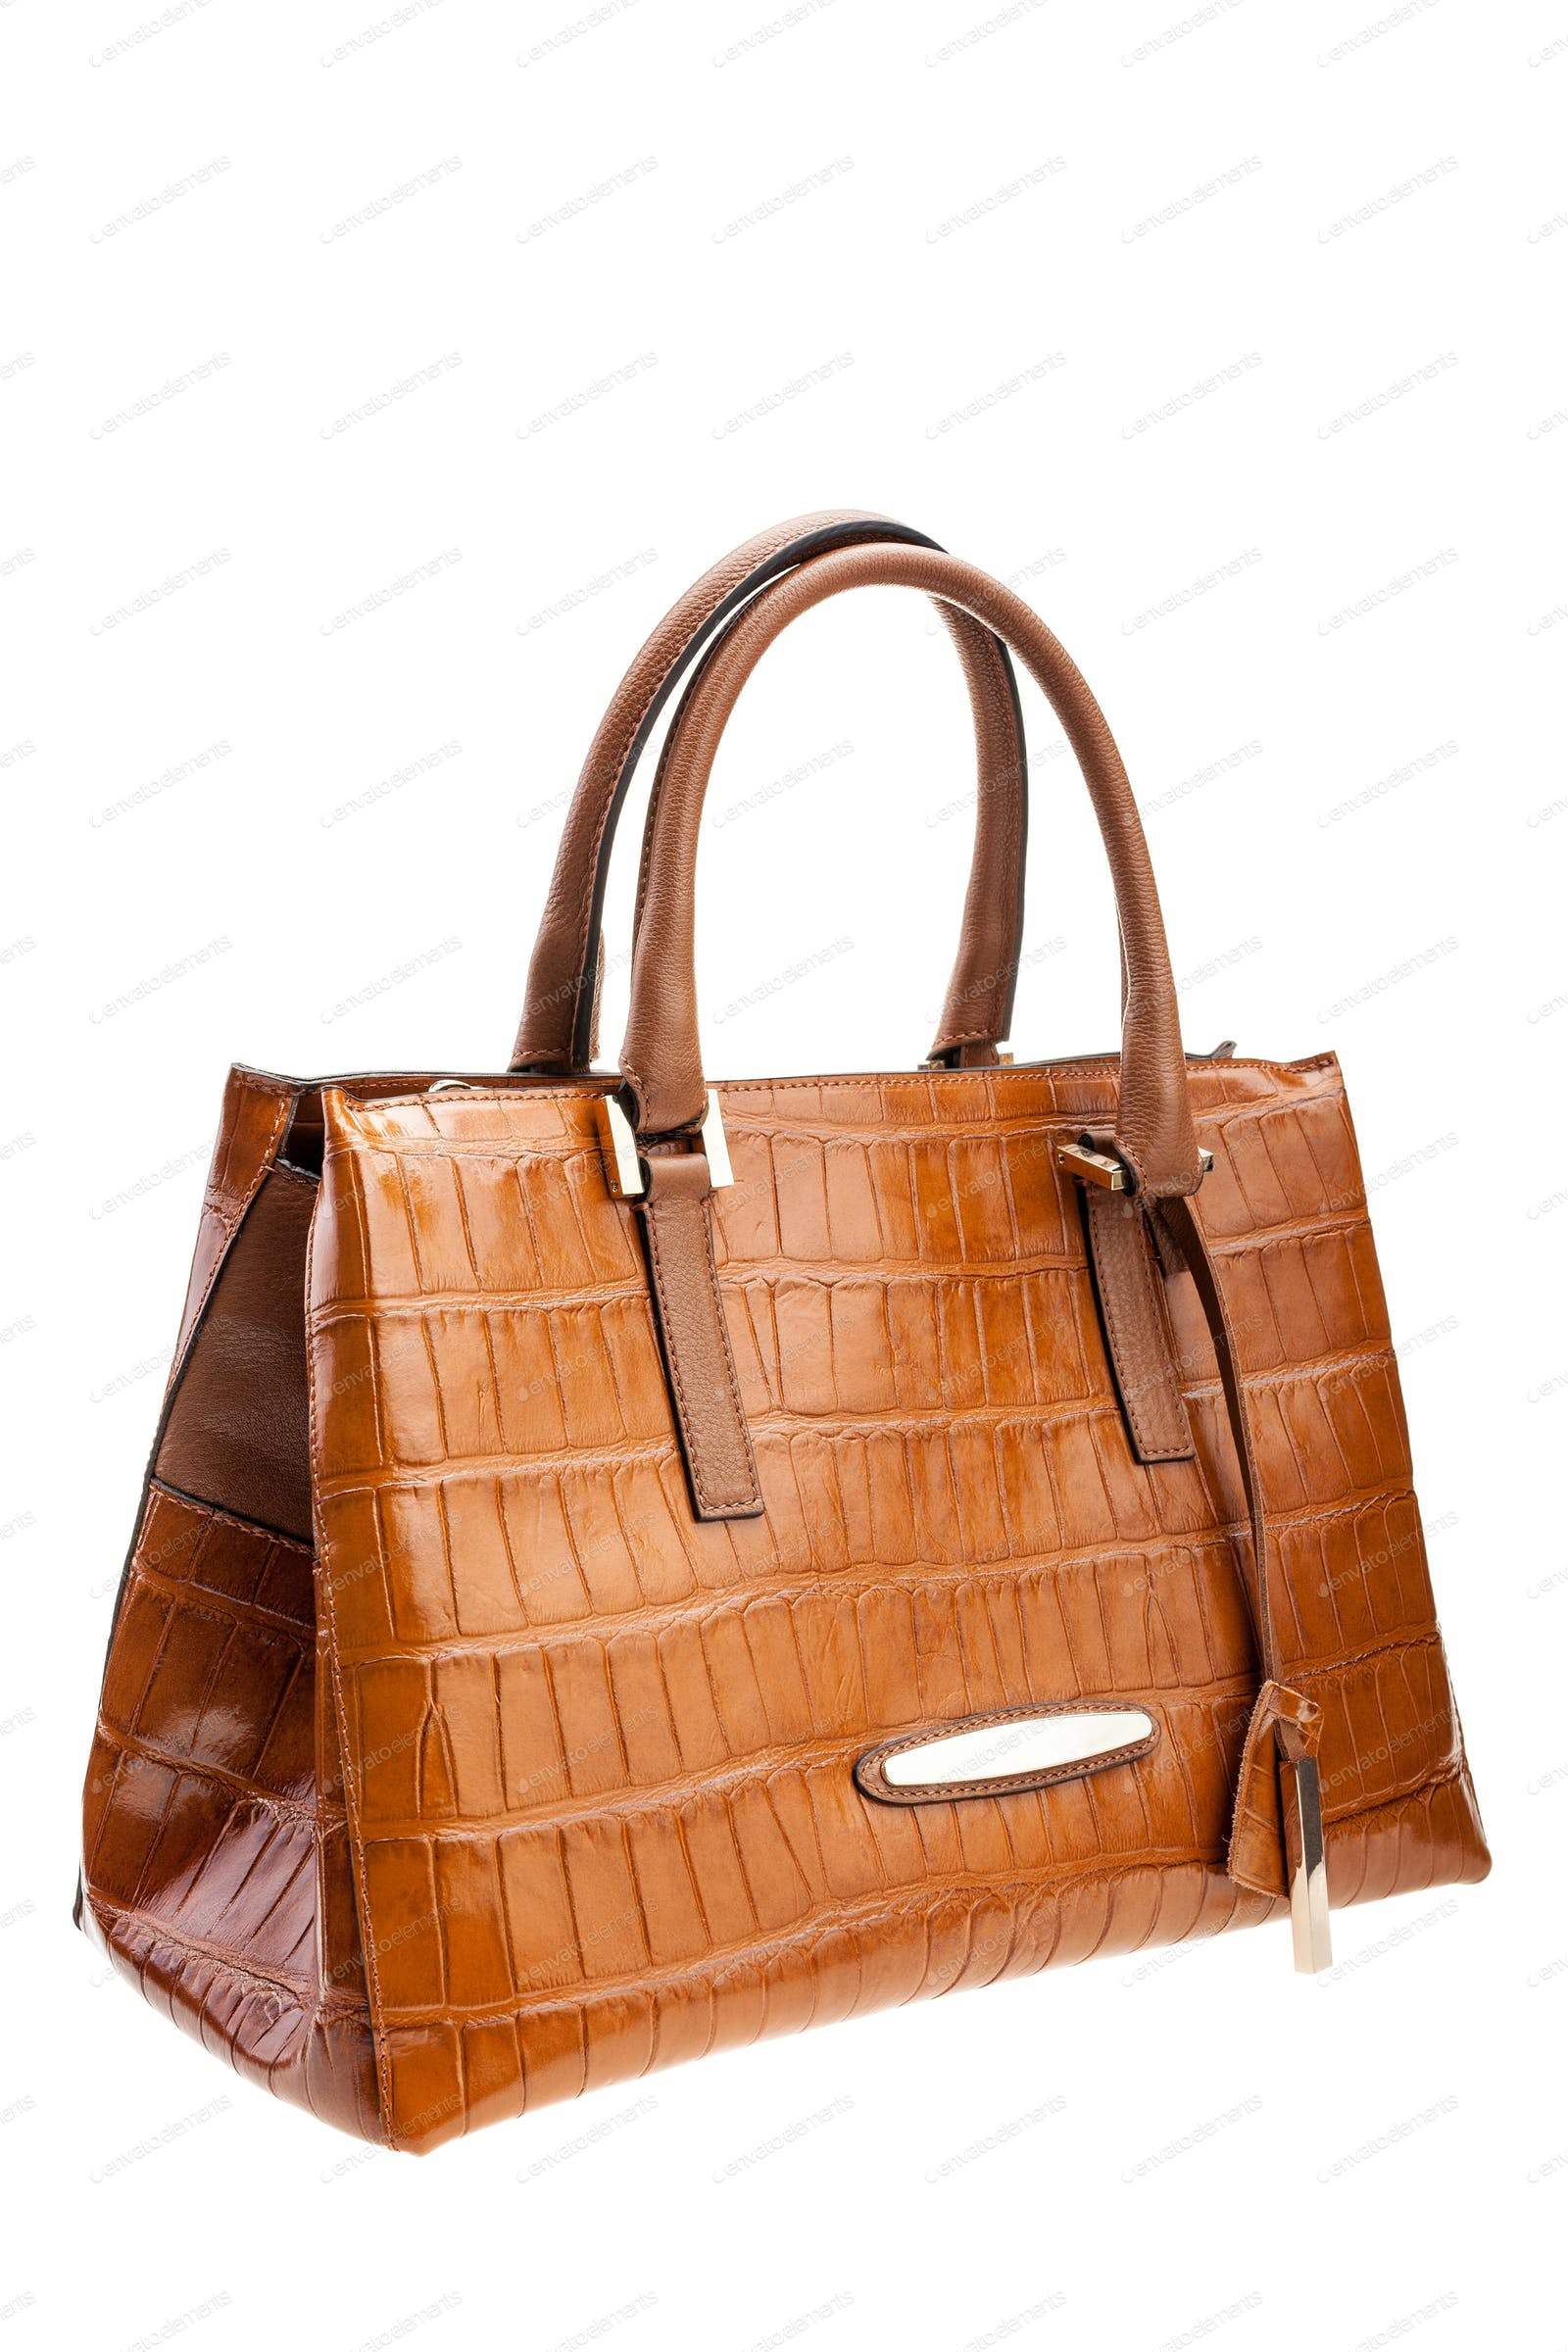 a31ca81fb9 Brown leather womens bag isolated on white background. photo by ...